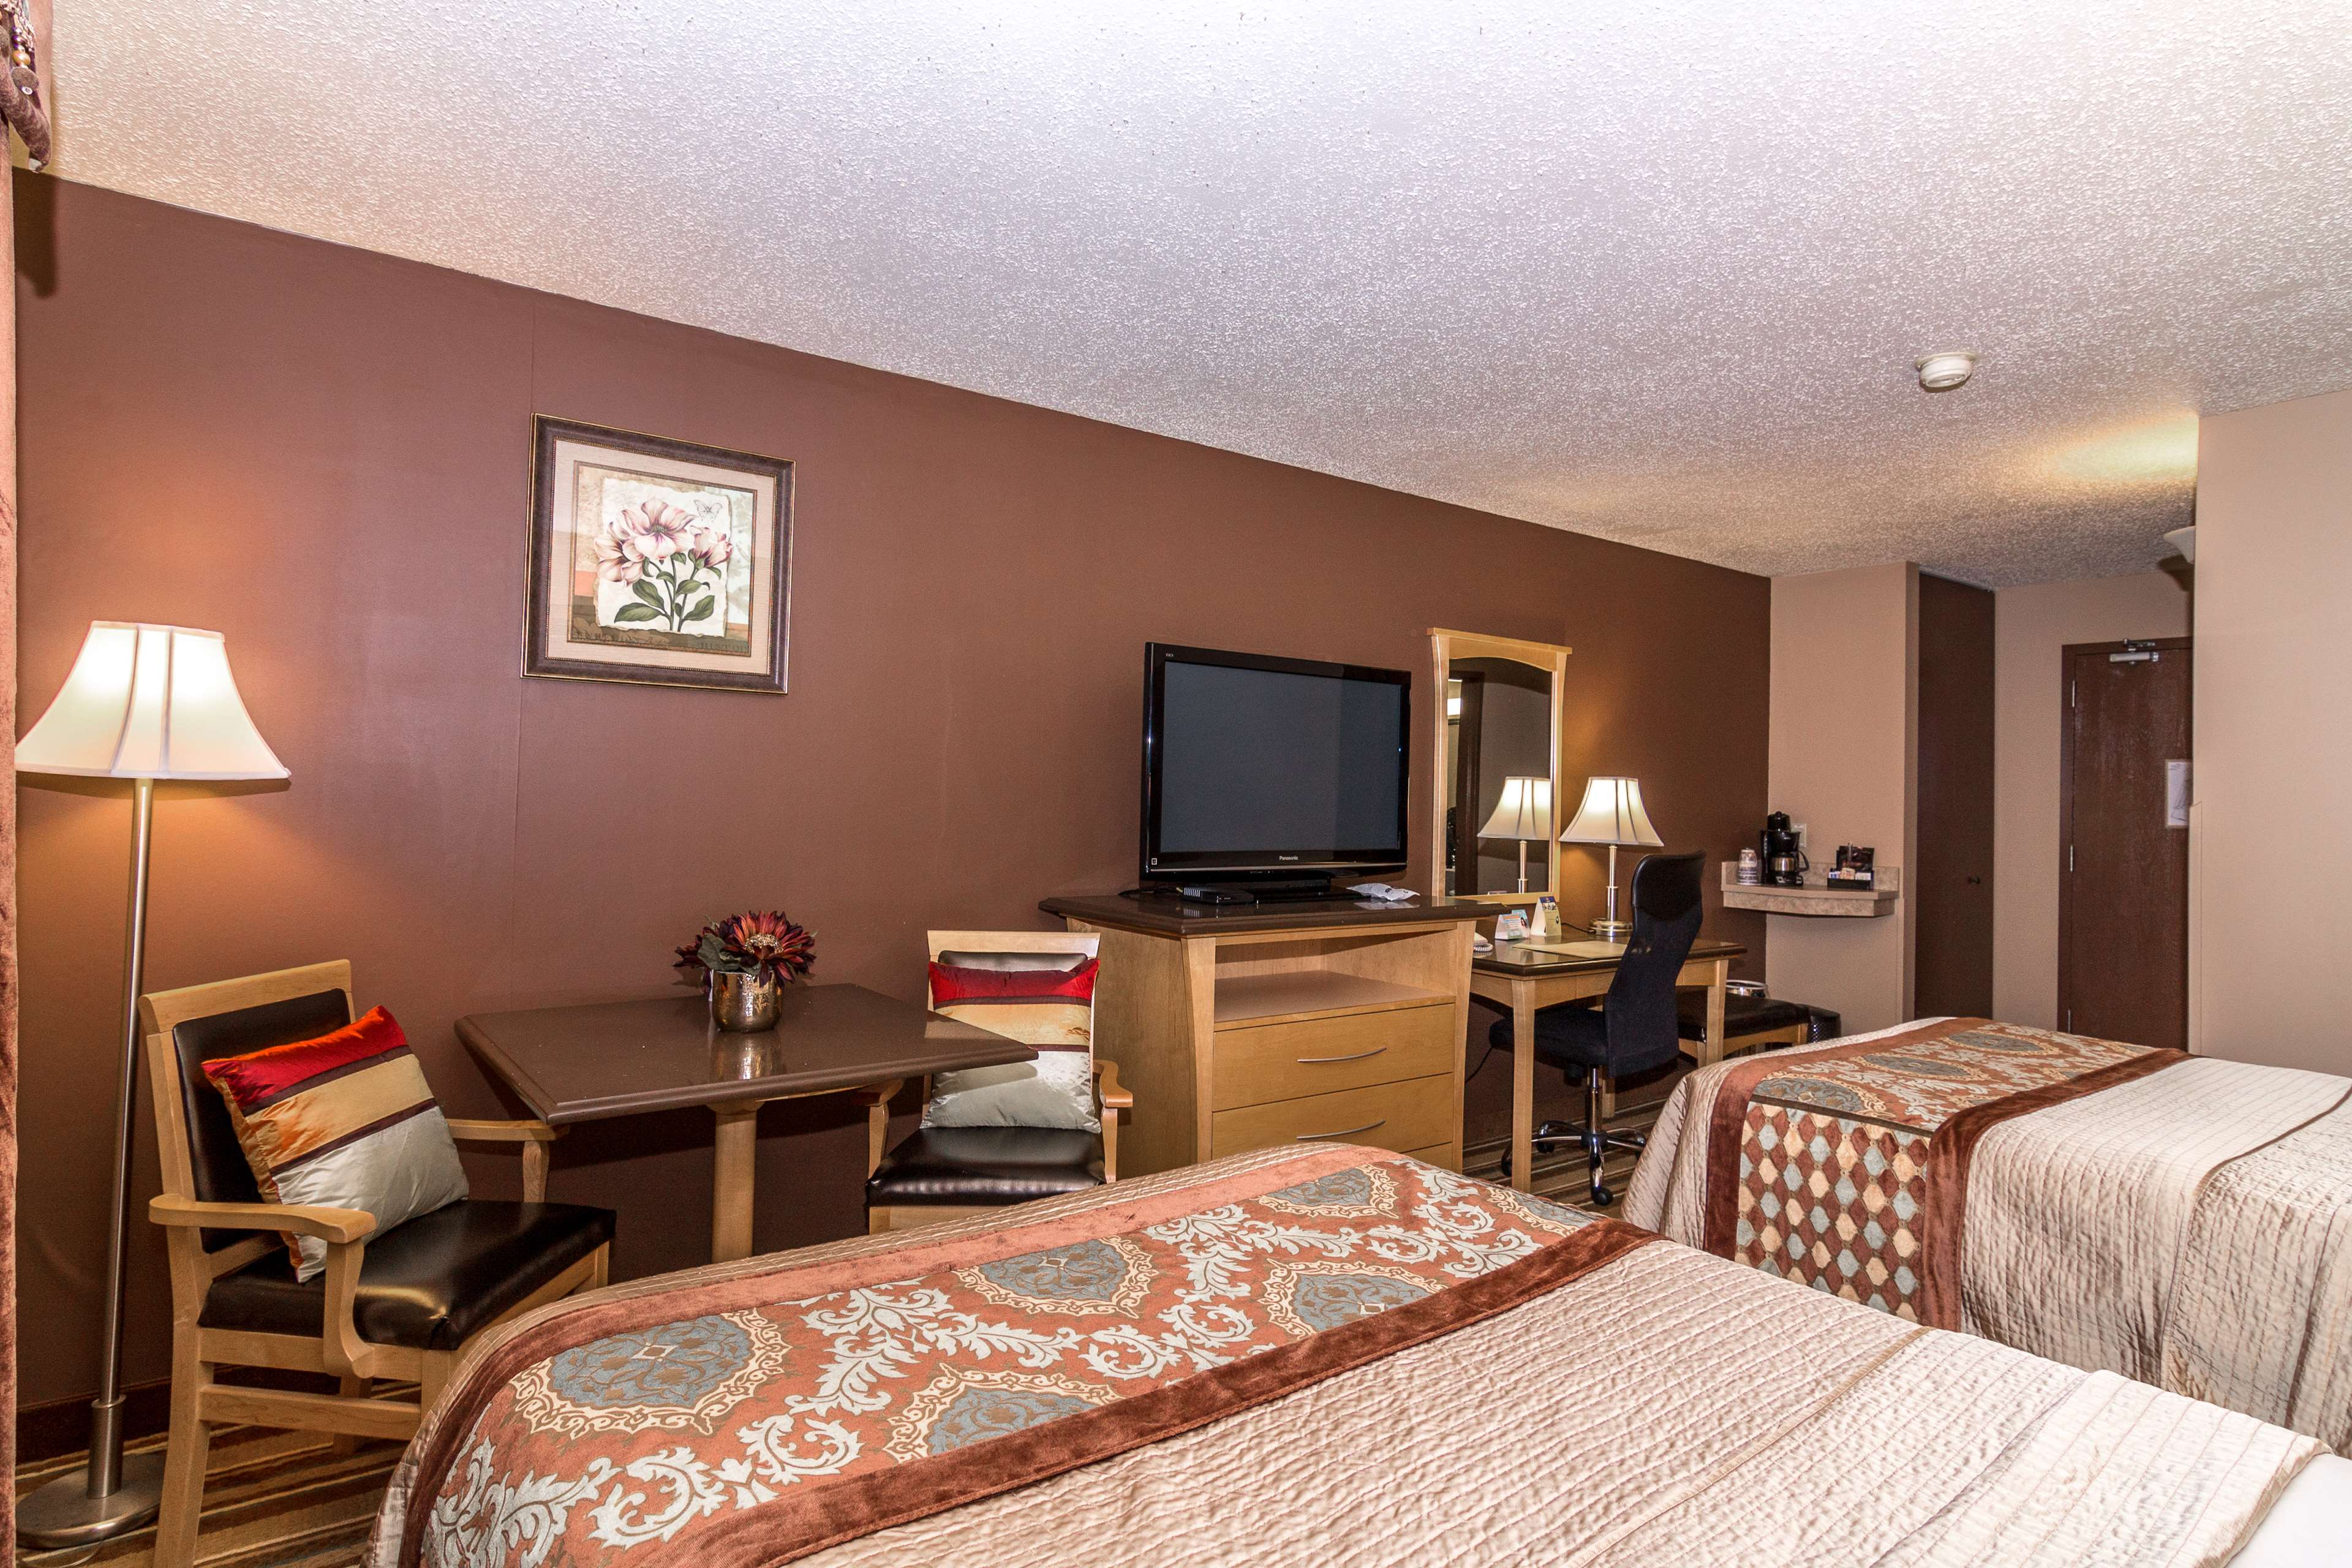 Best Western Marquis Inn & Suites in Prince Albert: Two Double Beds